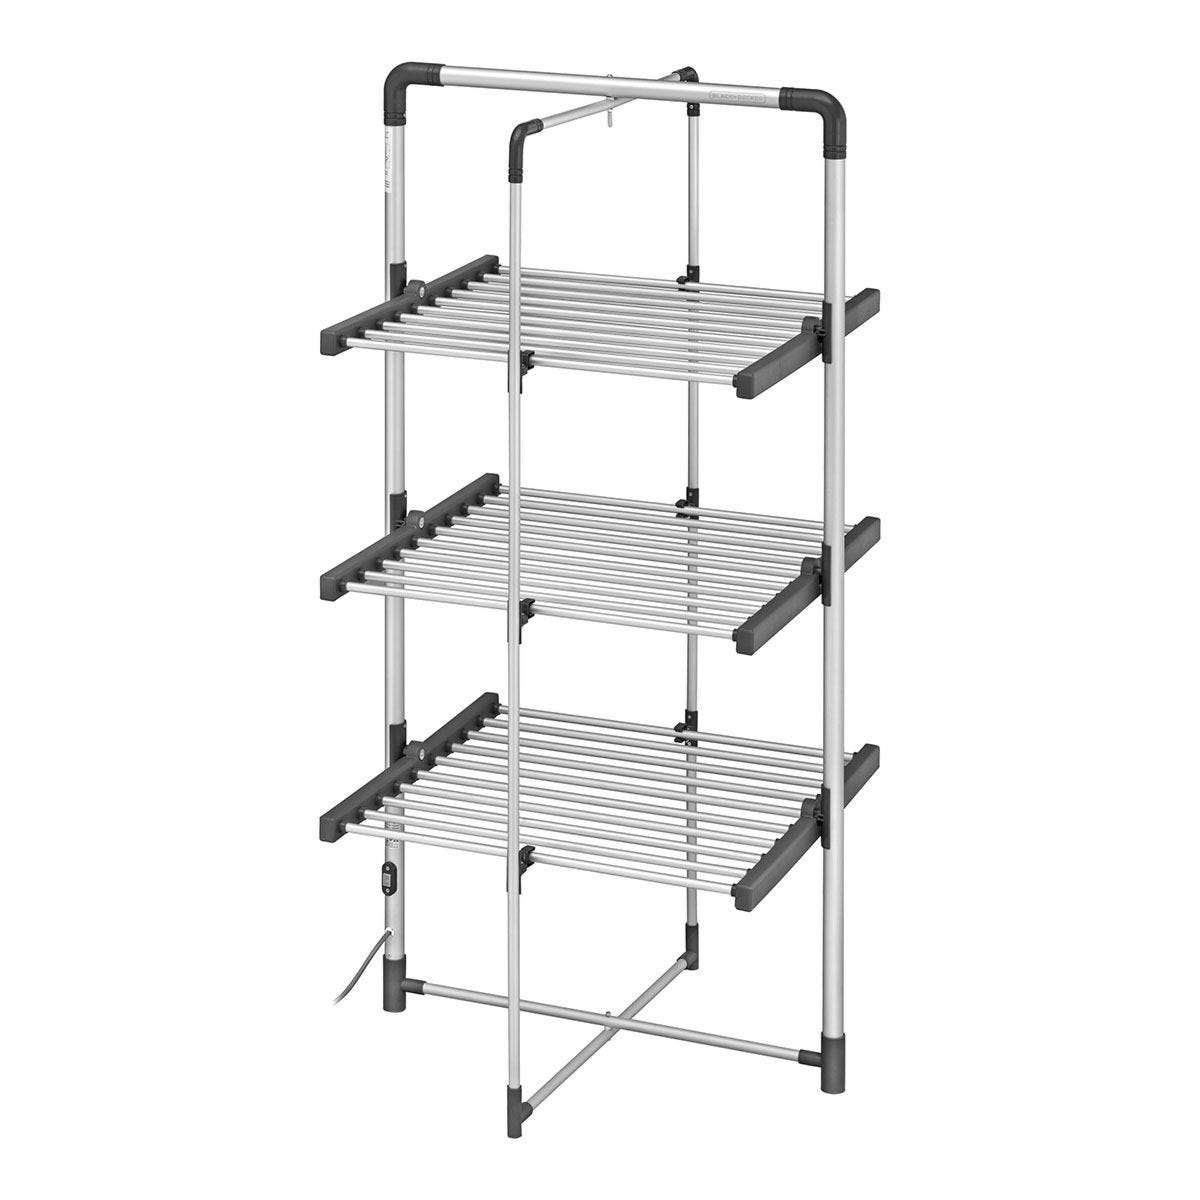 Black and Decker 3 Tier Heated Airer